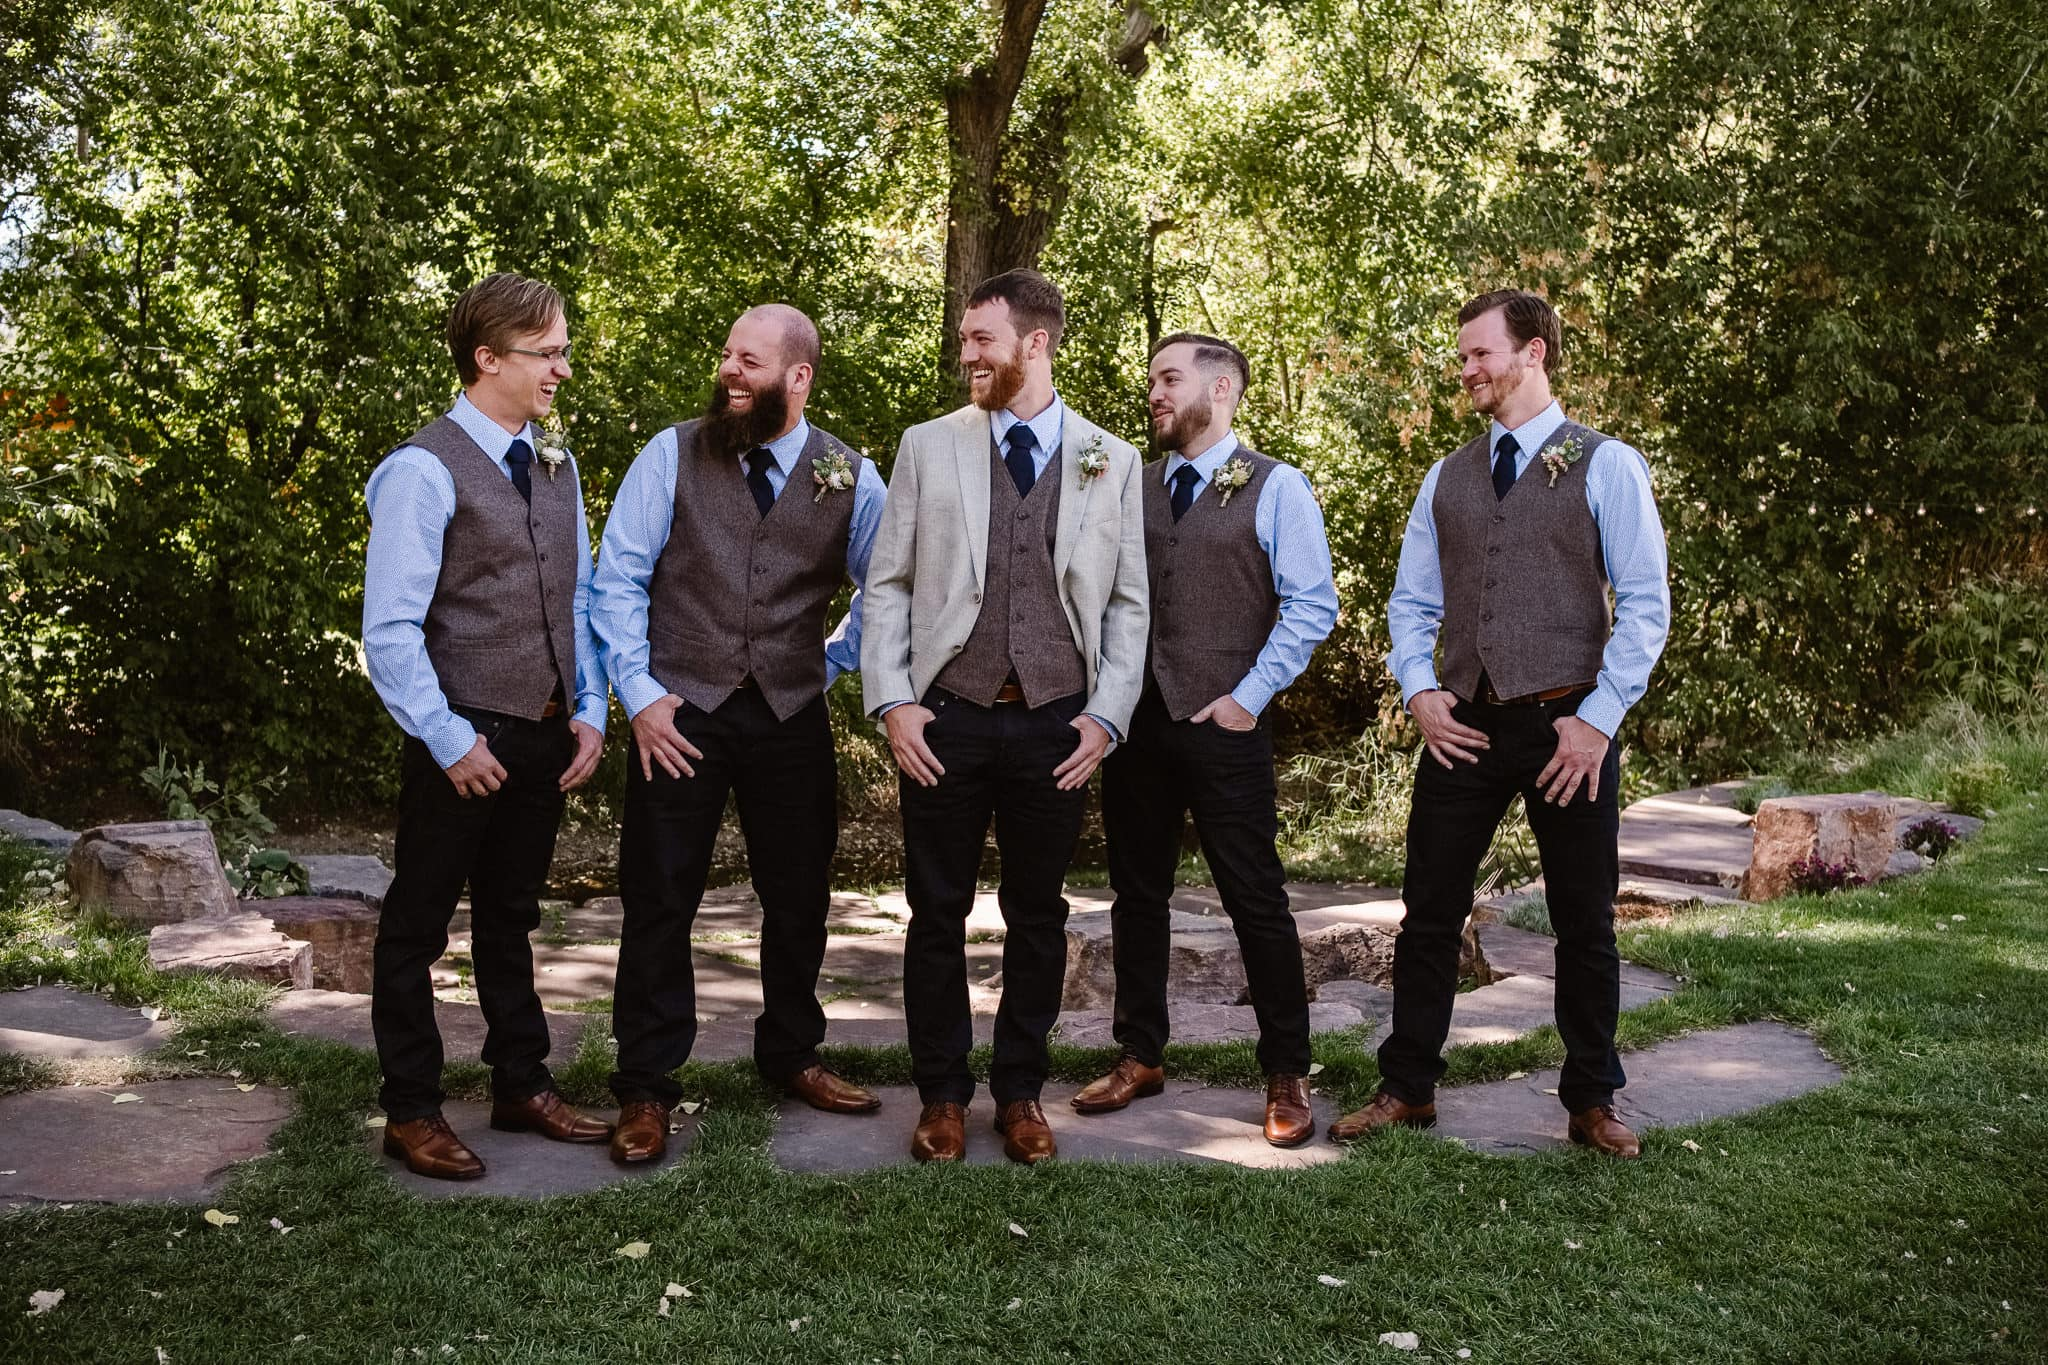 Lyons Farmette wedding photographer, Colorado intimate wedding photographer, groom and groomsmen portraits, grooms party photos,